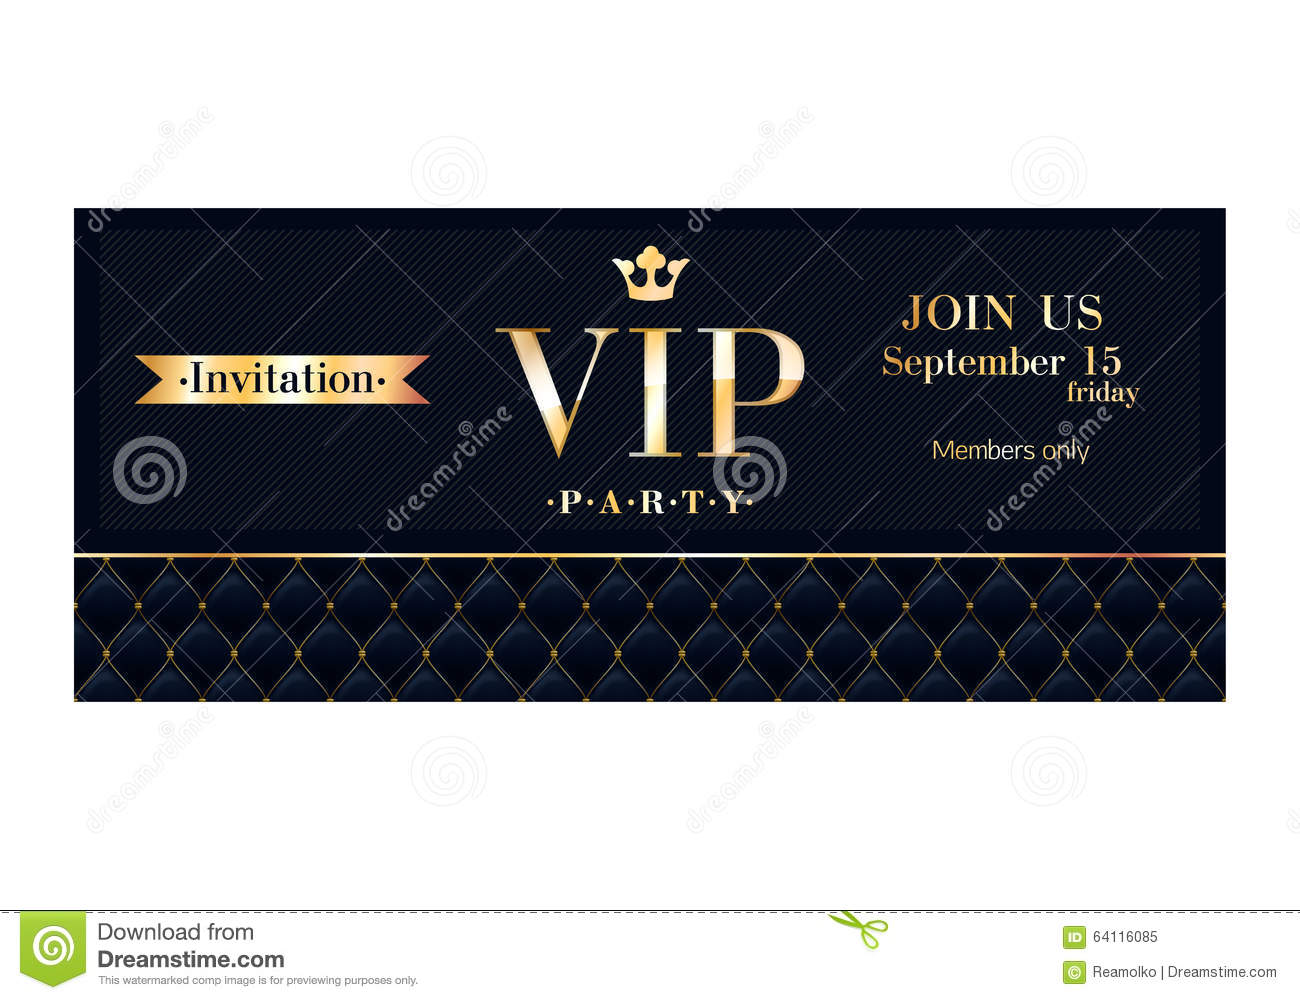 vip ticket invitation template | pro-thai.tk